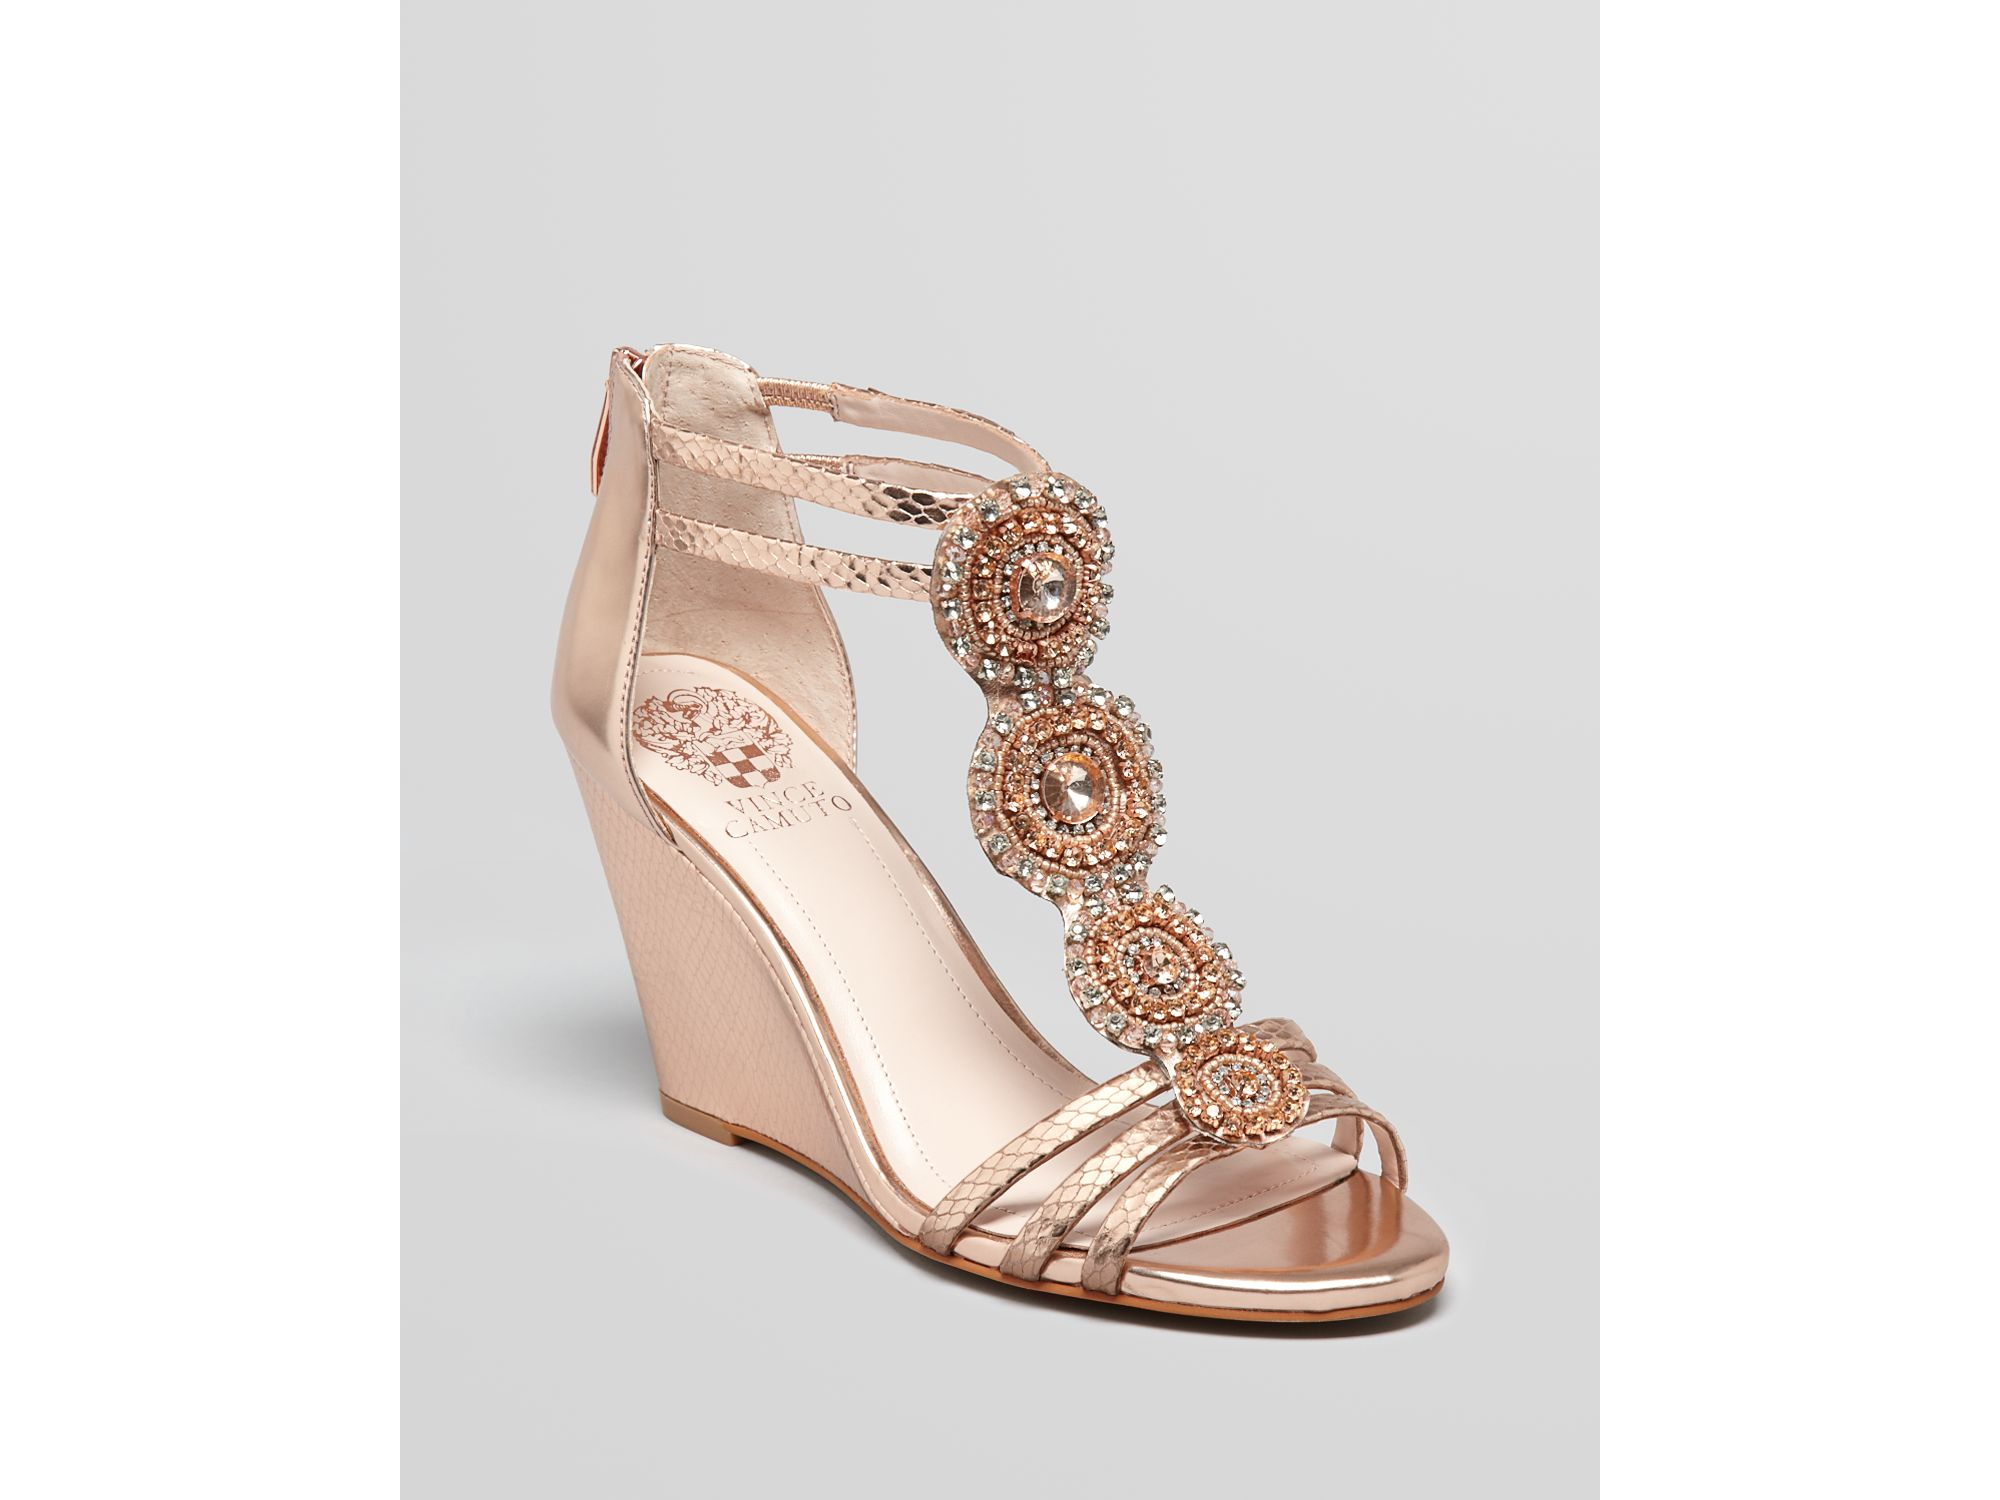 Vince Camuto Wedges T Strap Jeweled Zimily In Pink Rose